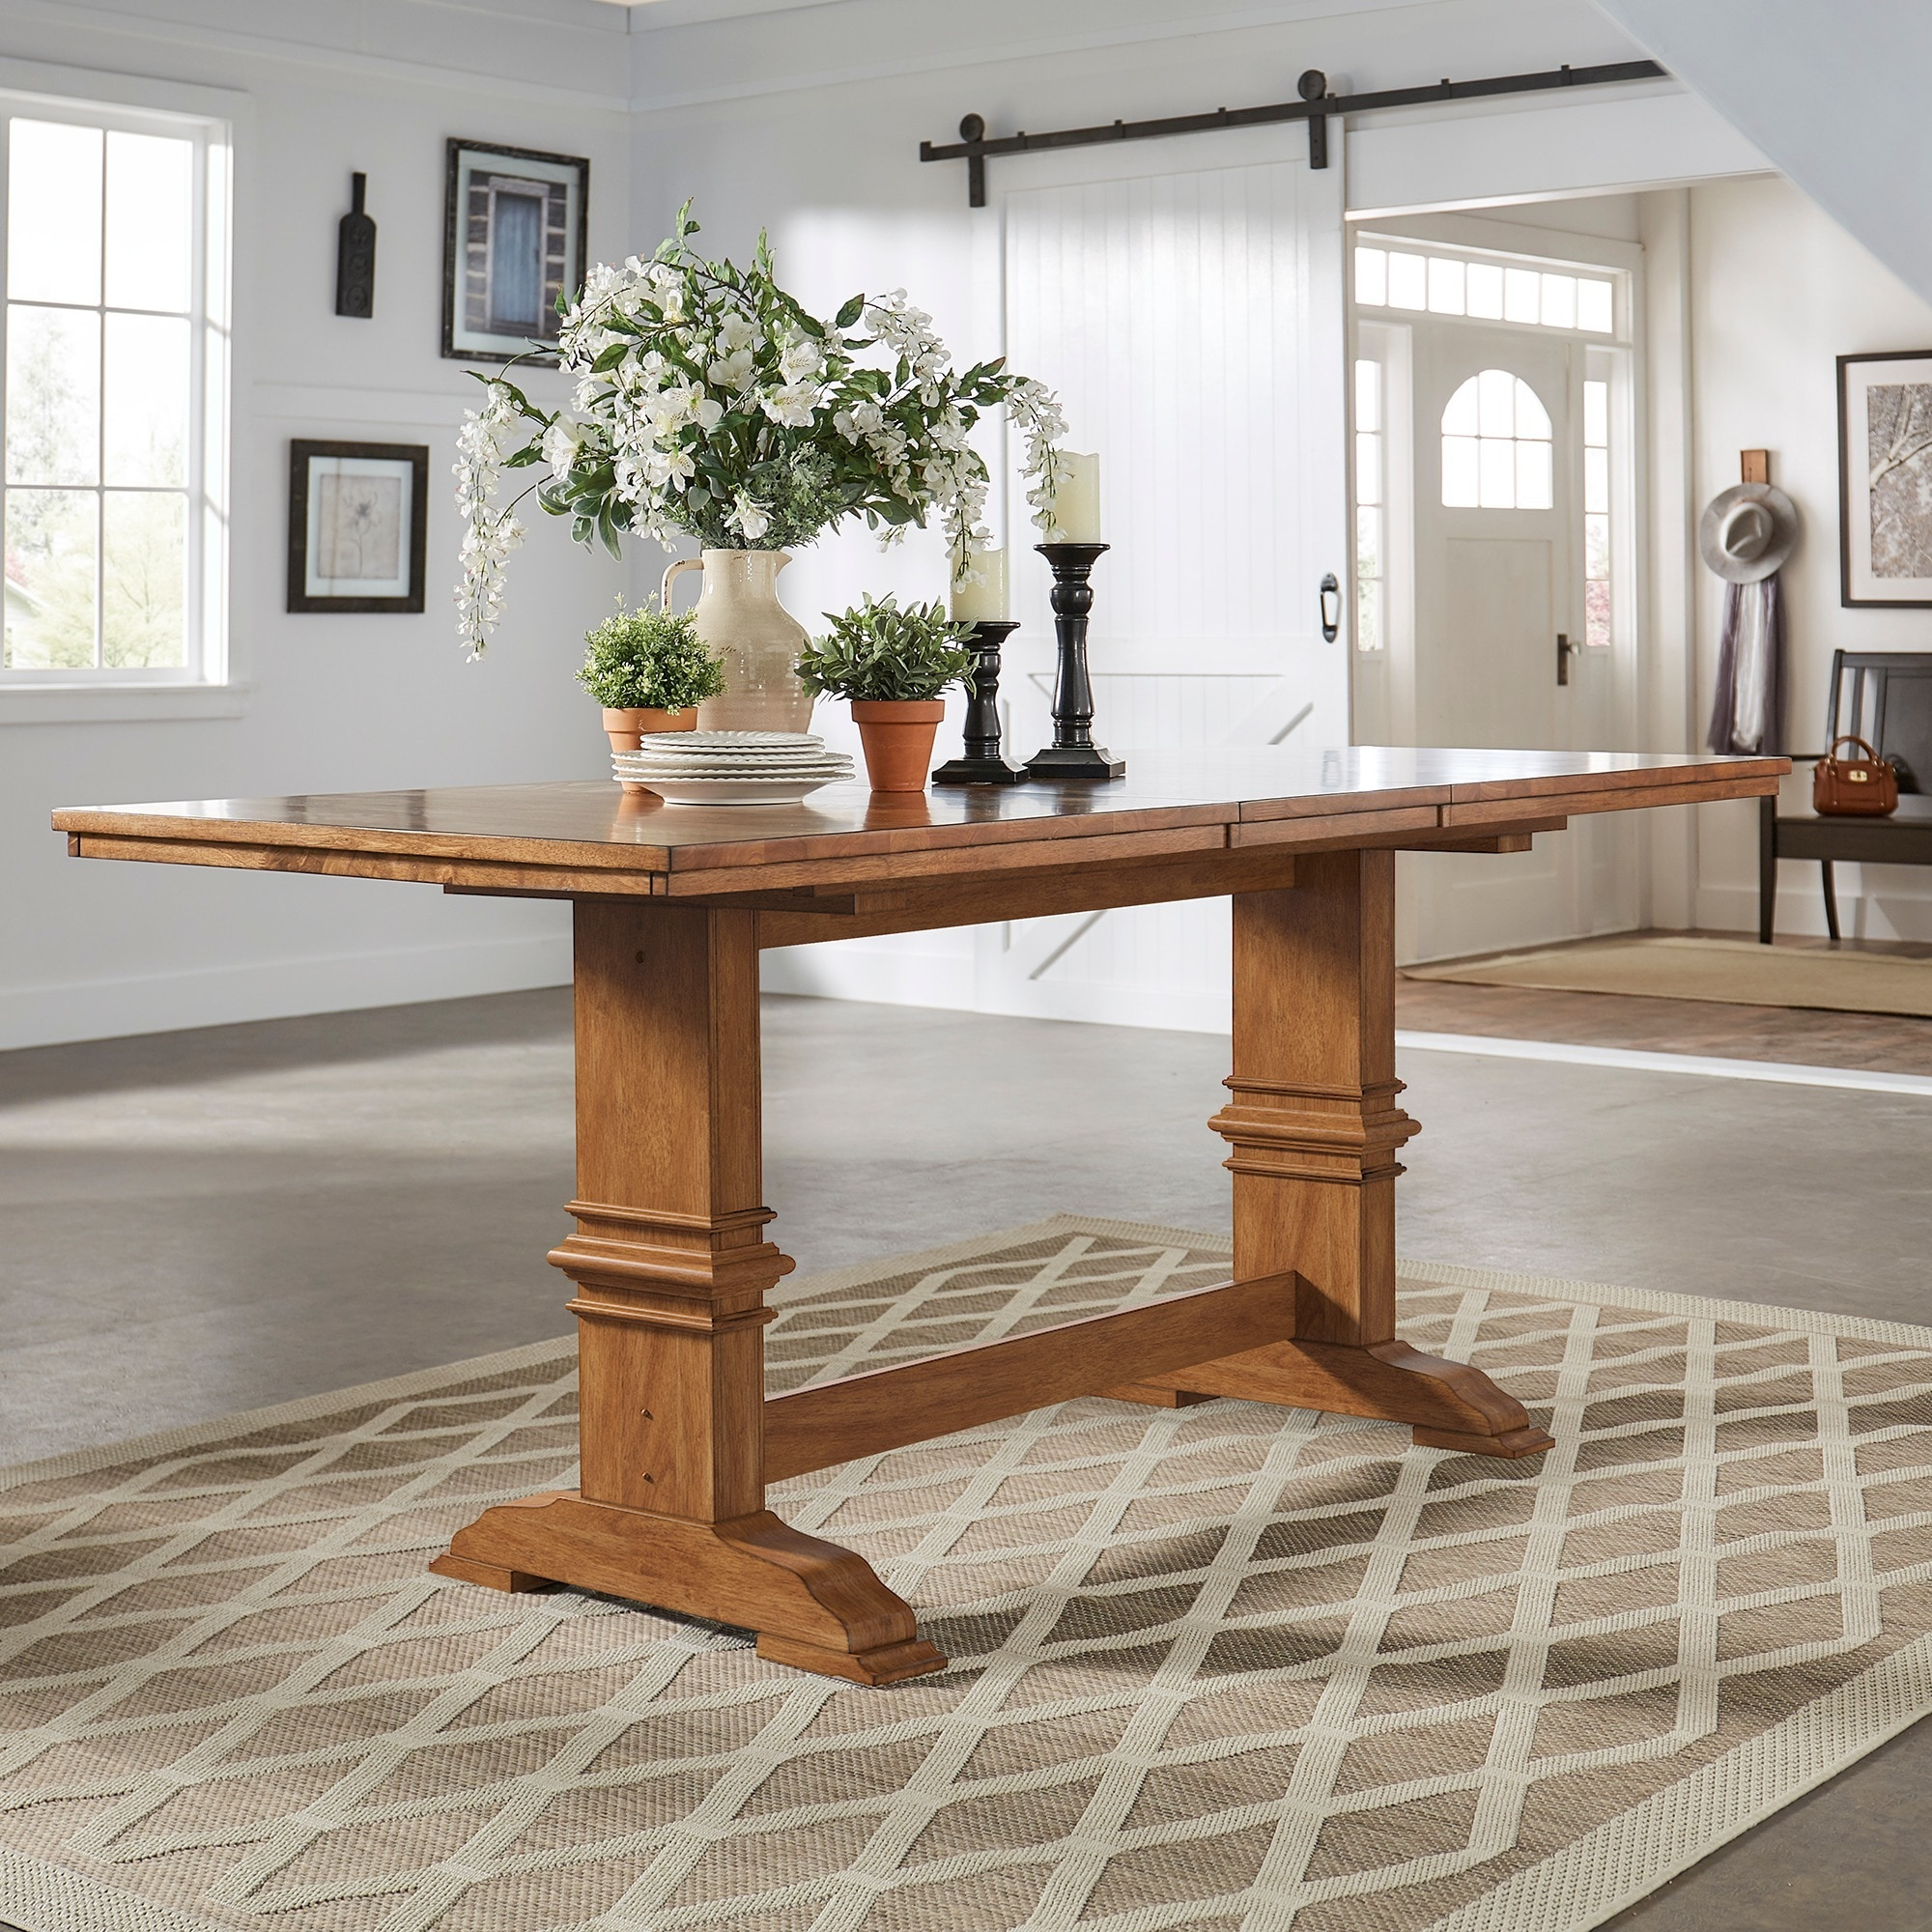 Shop eleanor solid wood counter height trestle base dining table by inspire q classic on sale free shipping today overstock com 17999921